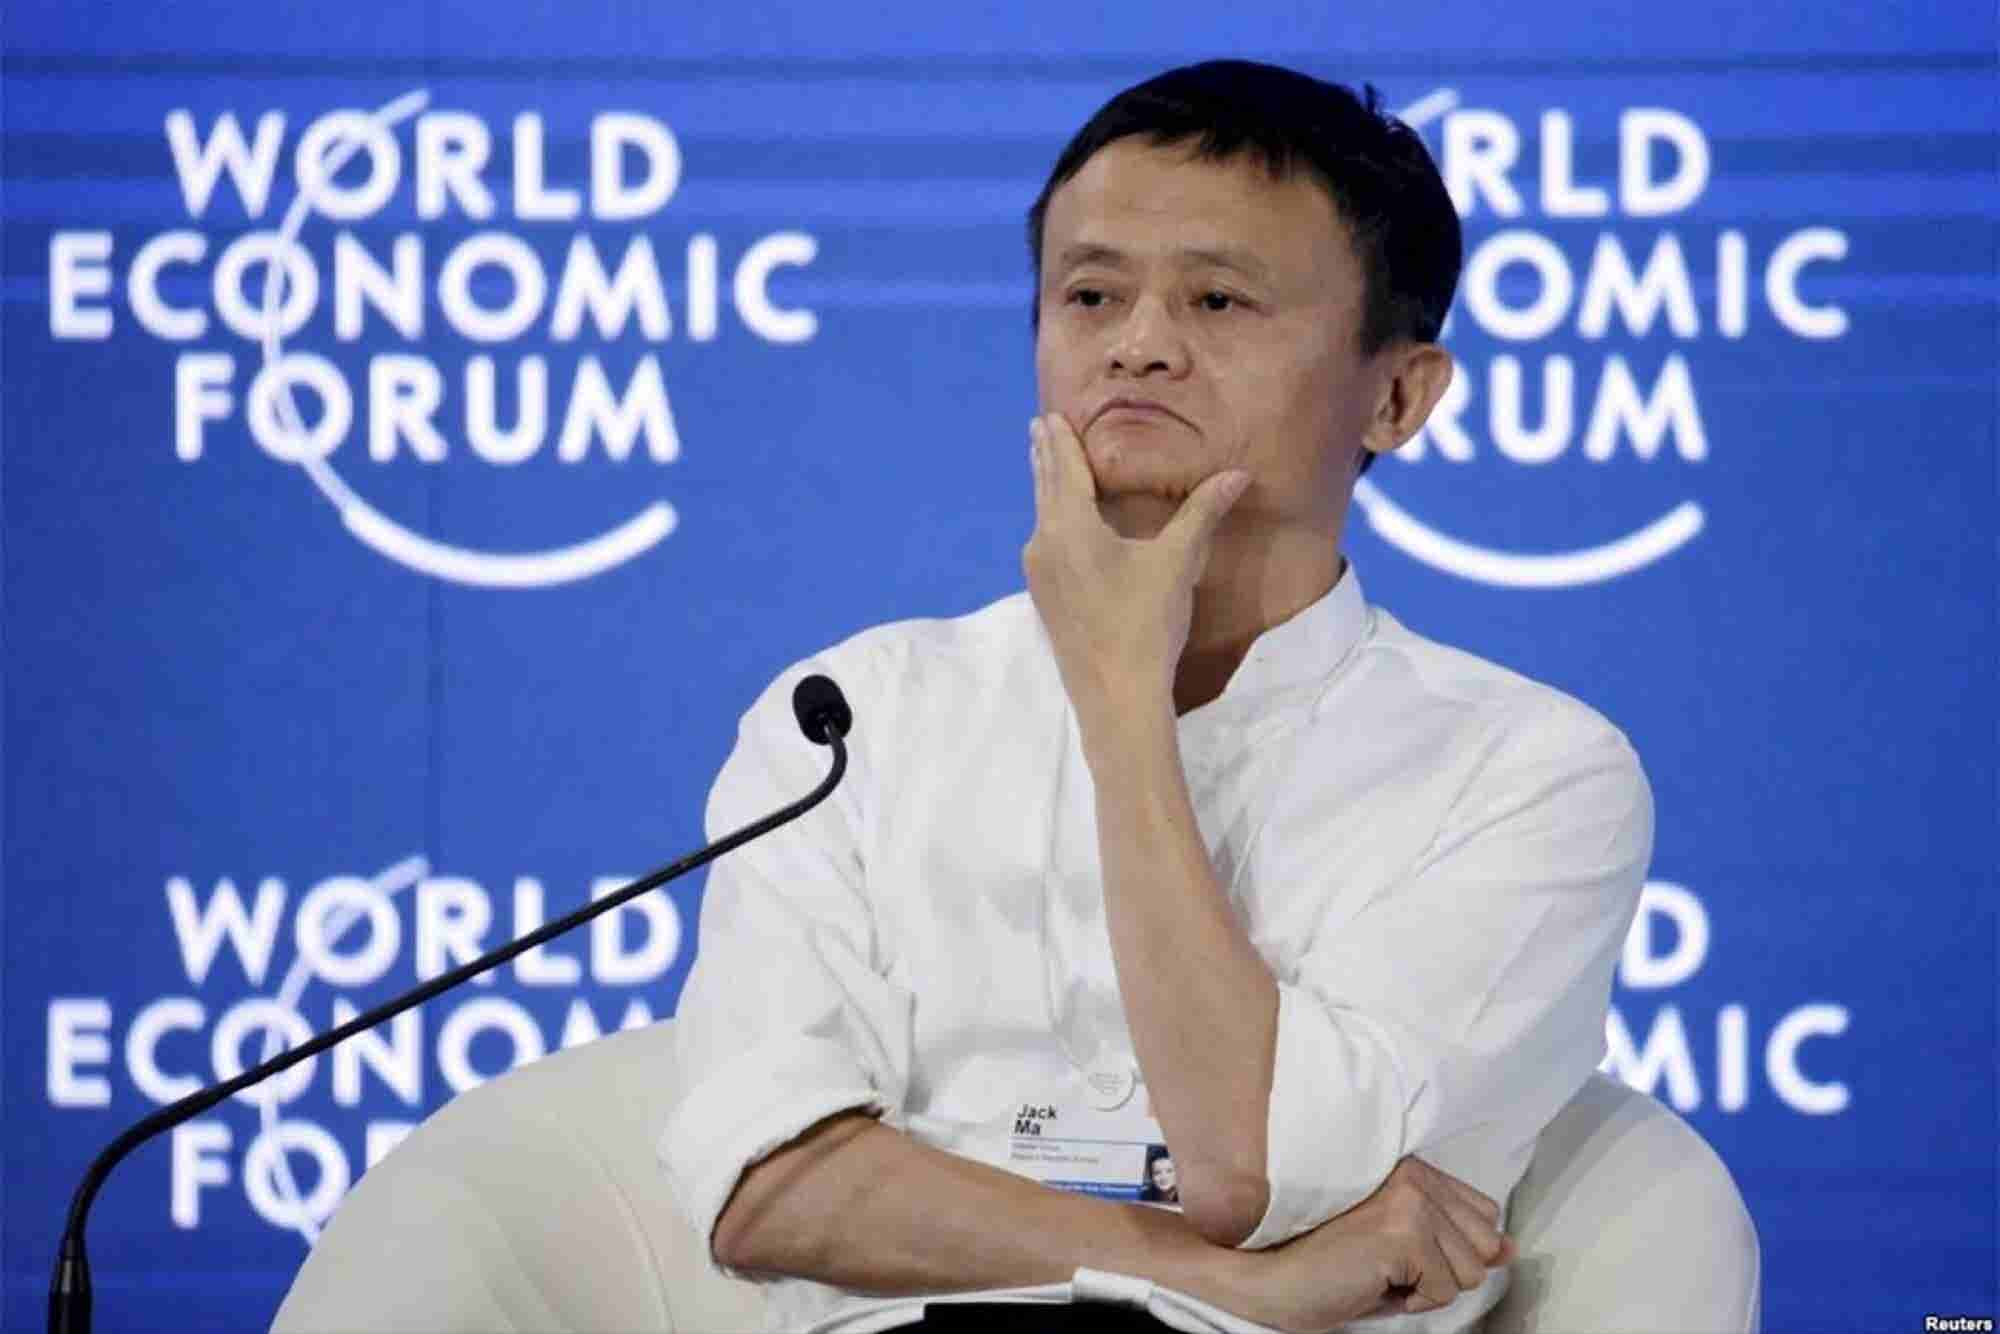 SEC Investigating Alibaba's Accounting Practices